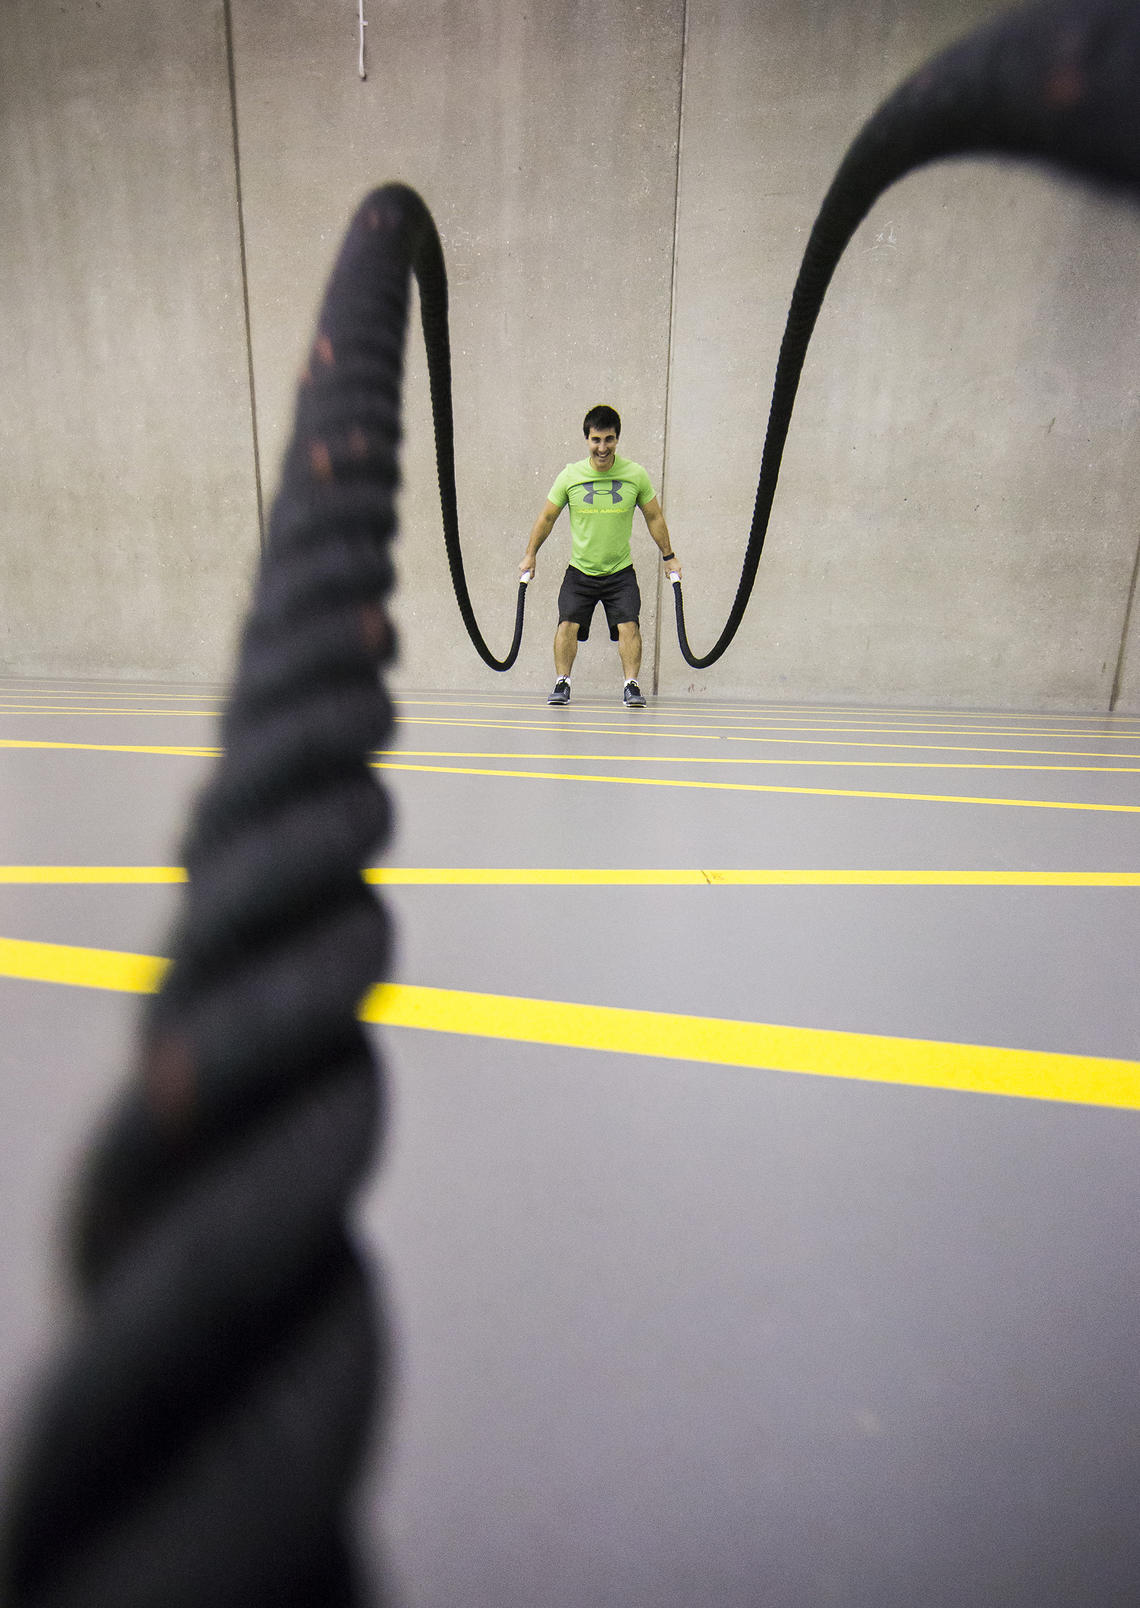 battle rope workout in the fitness centre track area